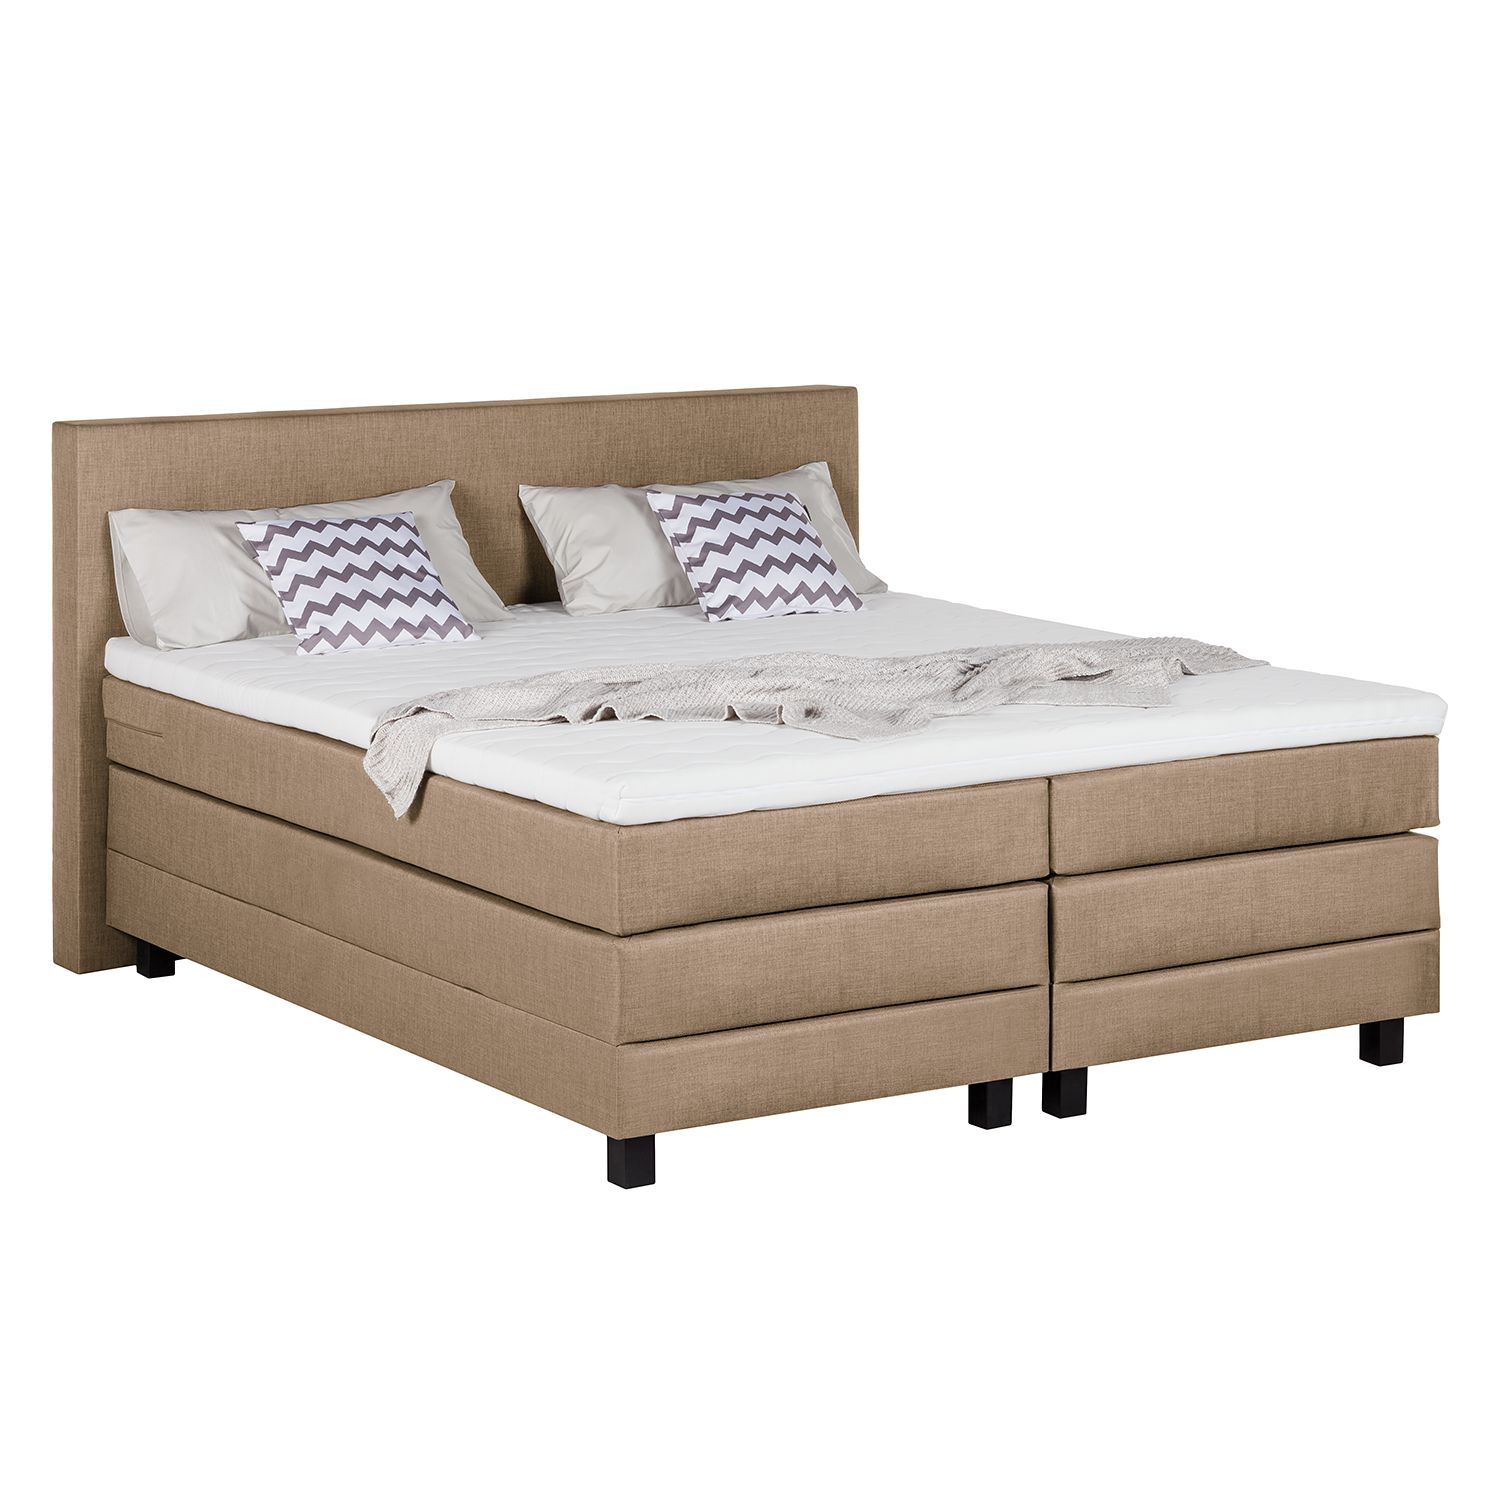 Boxspringbett Splendid Night II - 140 x 200cm - H3 ab 80 kg - Taupe, Grand Selection image 1